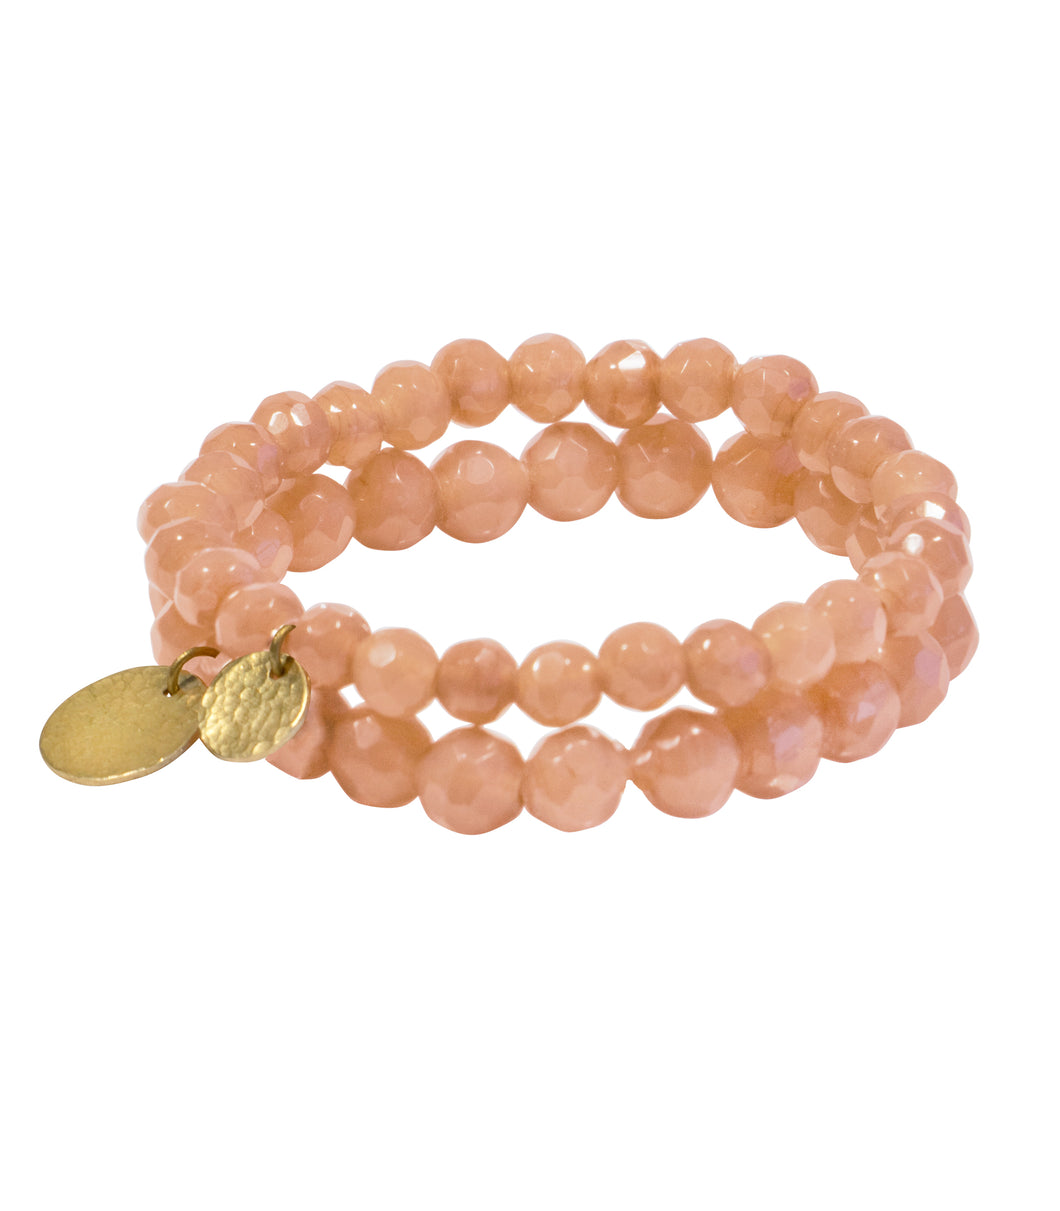 Blush bead stone bracelet with hammered coin hangings